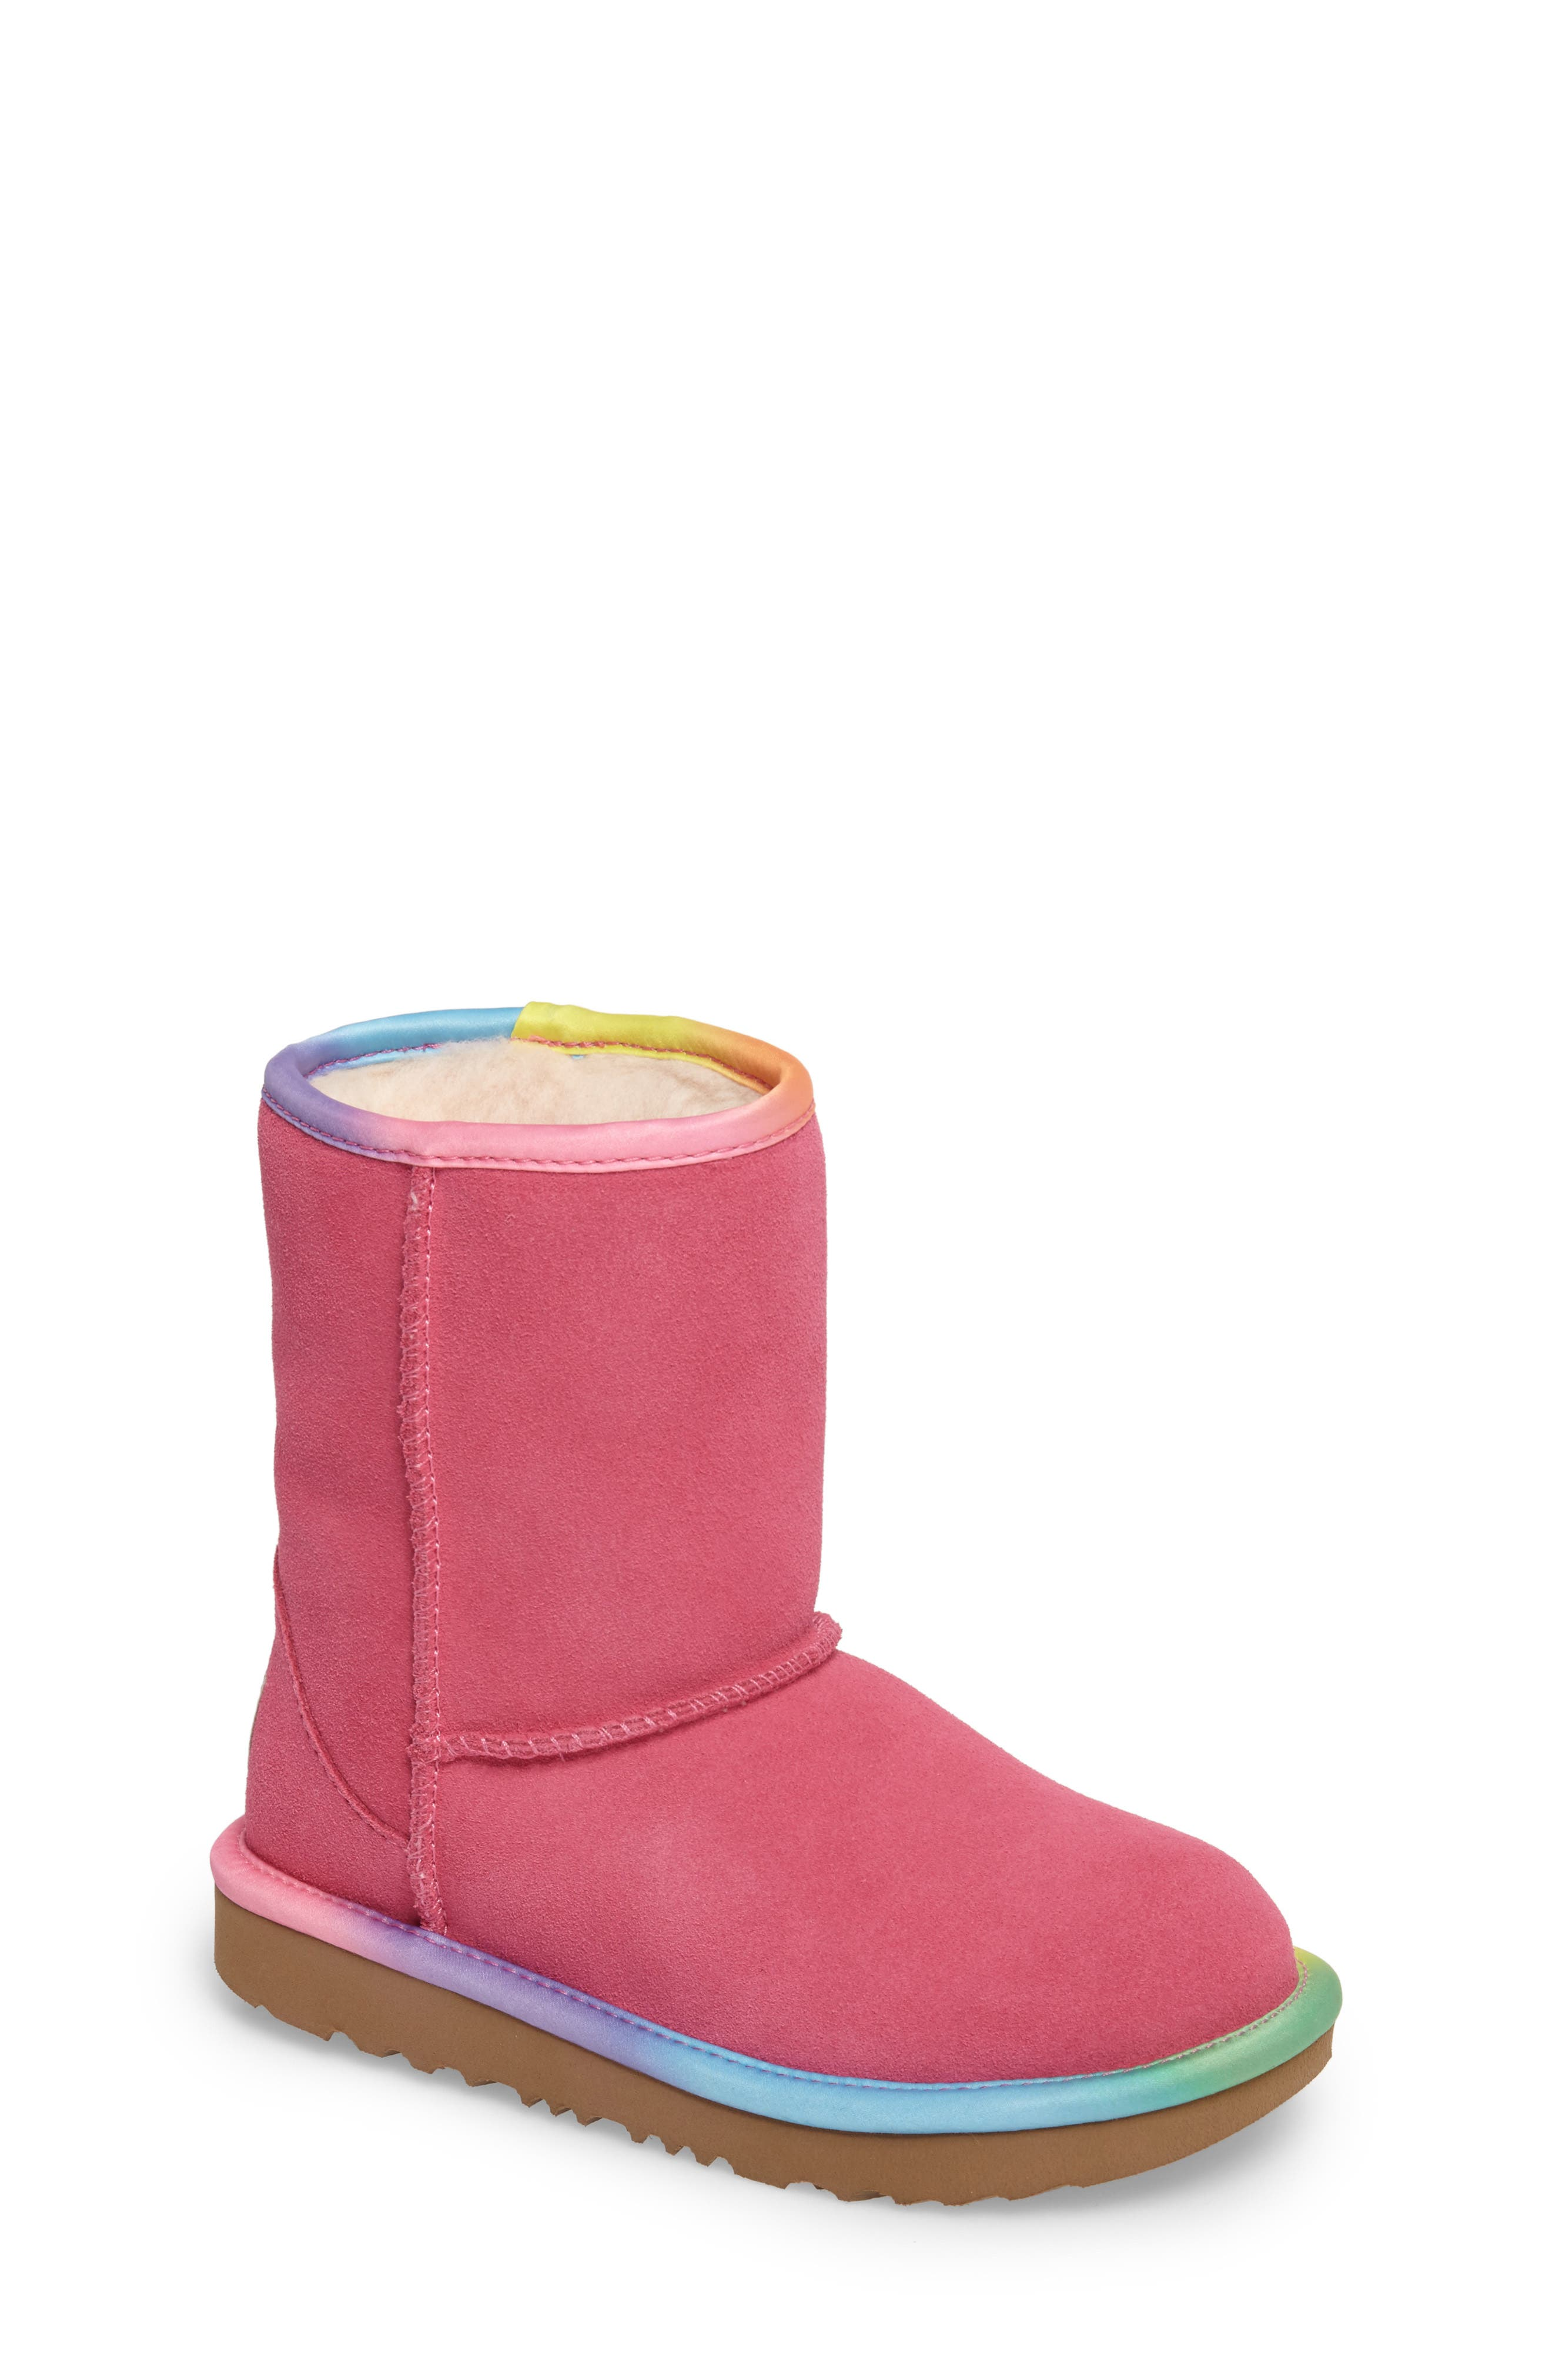 Main Image - UGG® Classic Short II Water-Resistant Genuine Shearling Rainbow Boot (Walker, Toddler, Little Kid & Big Kid)